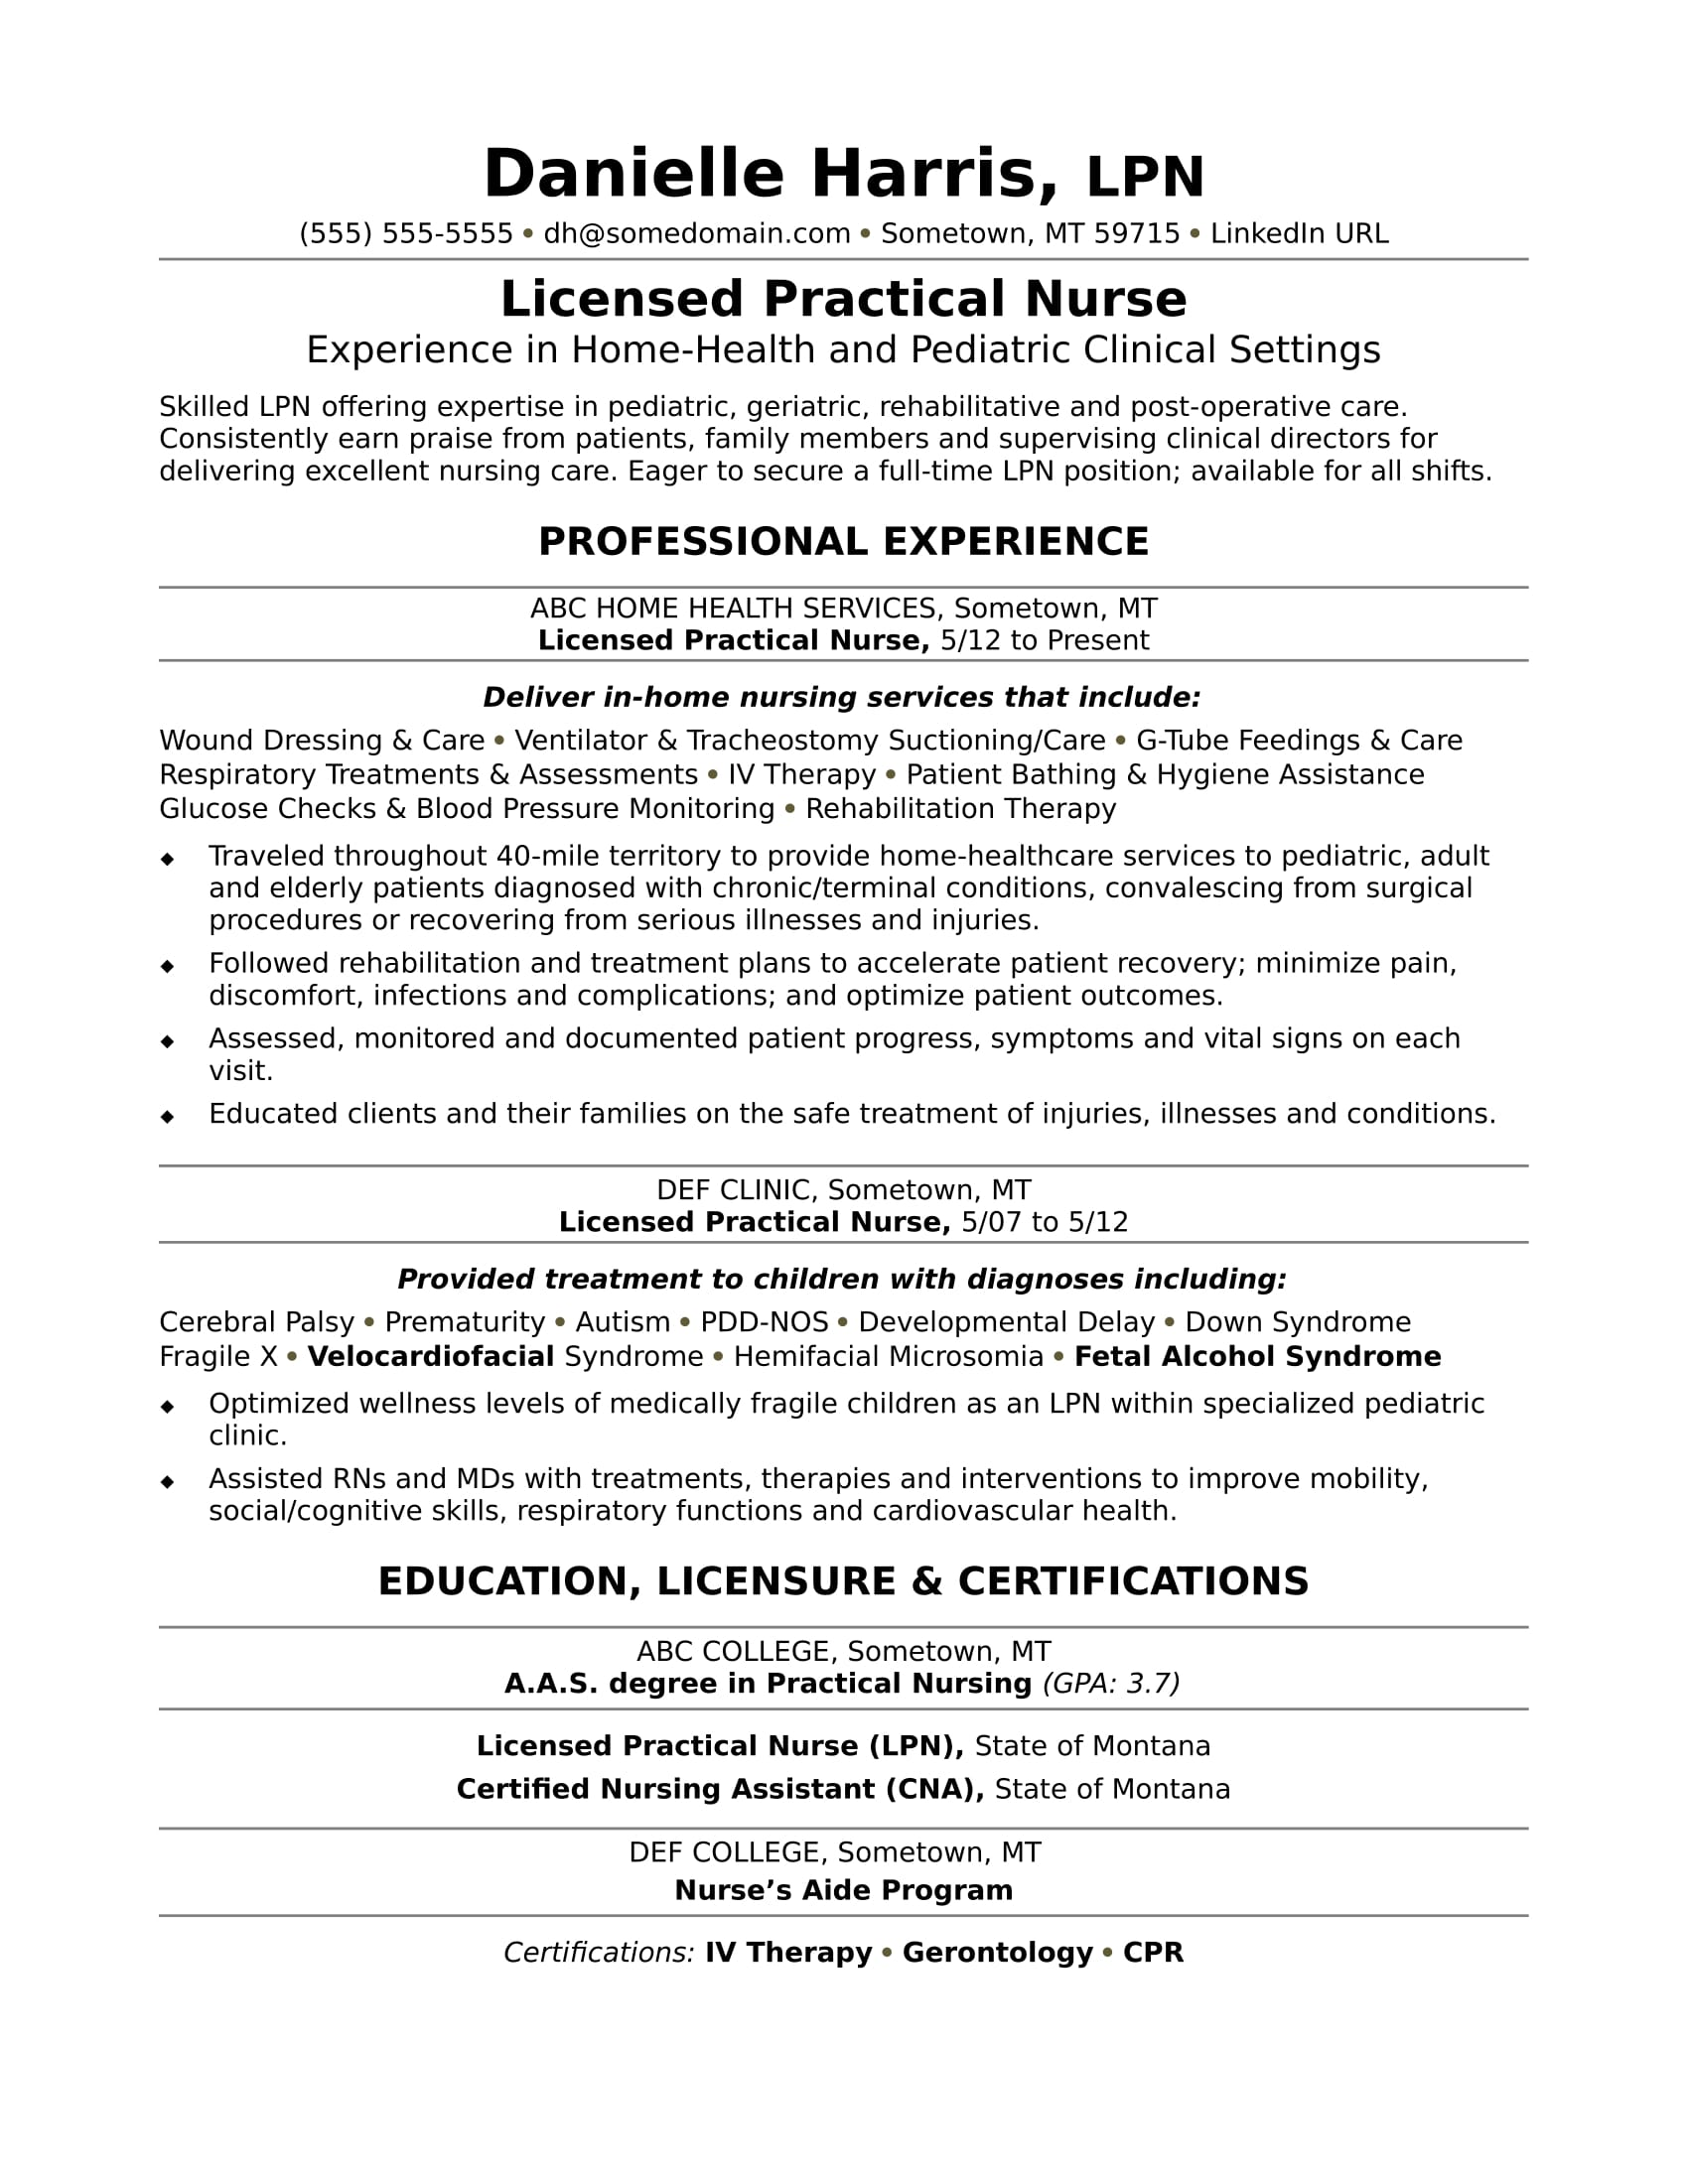 licensed practical nurse resume sample monster home health aide job description for Resume Home Health Aide Job Description For Resume